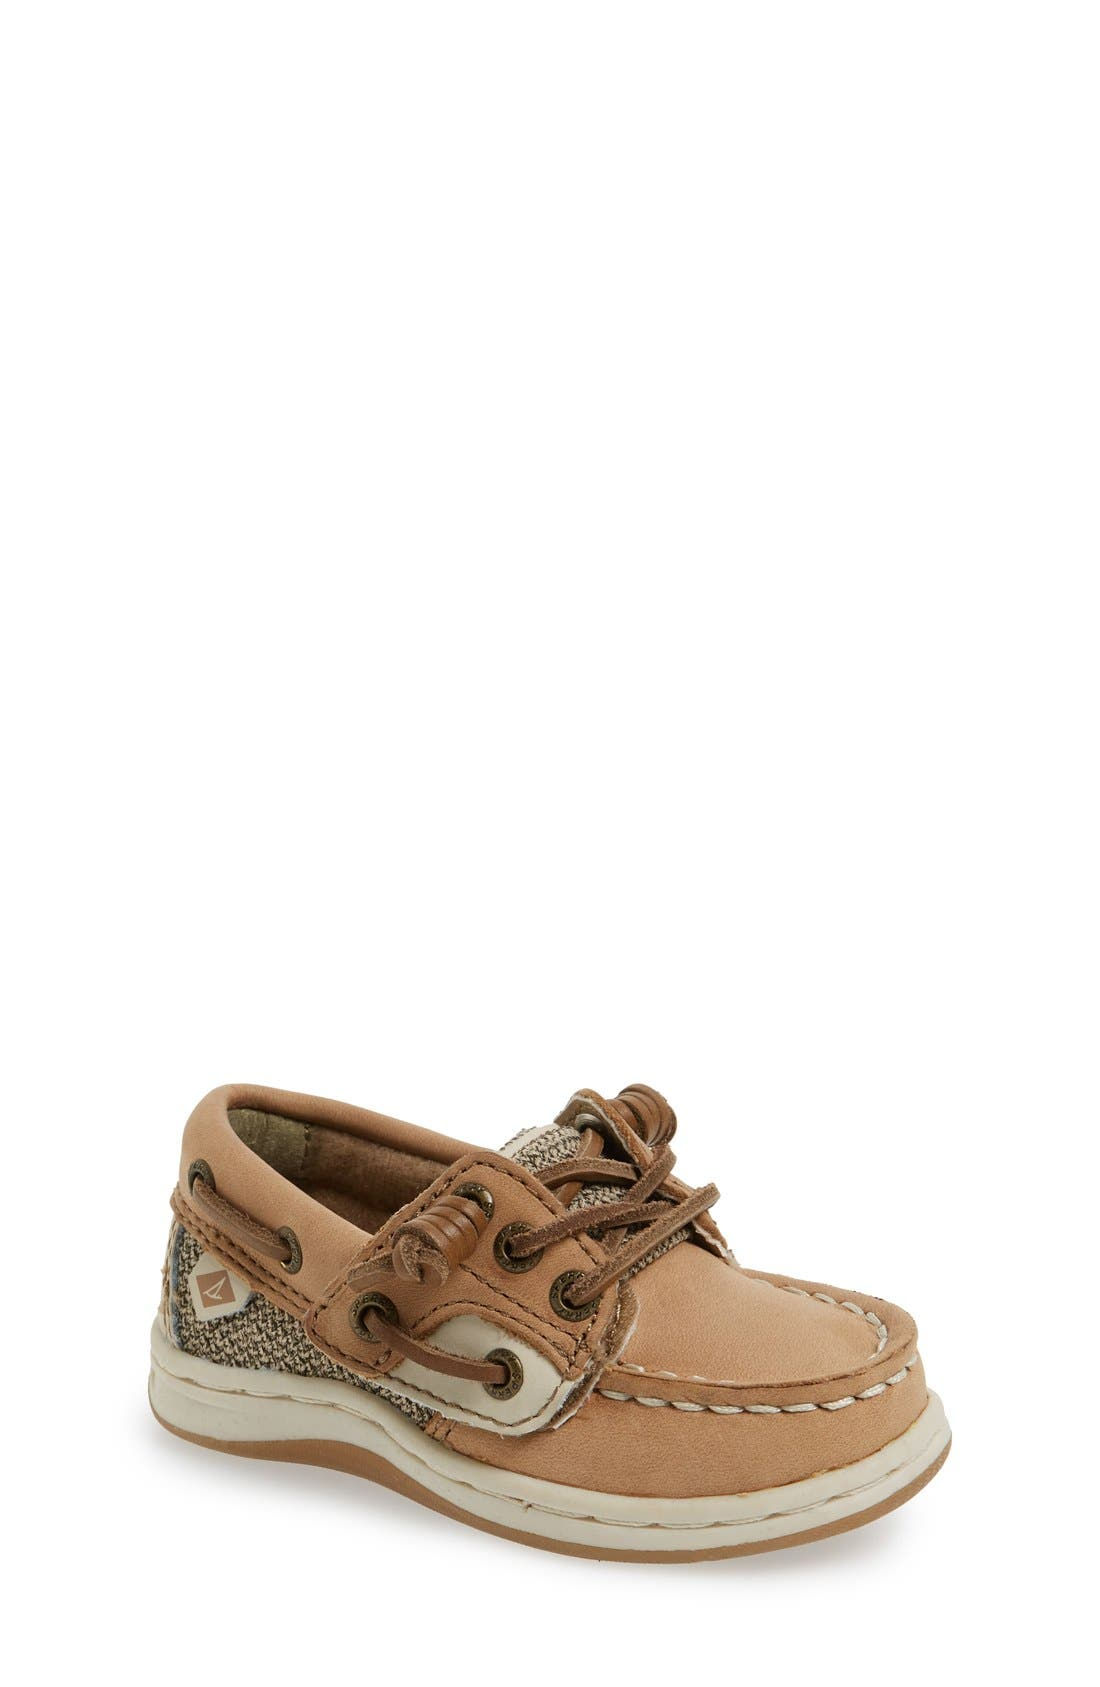 'Songfish' Boat Shoe,                             Main thumbnail 1, color,                             Linen/ Oat Leather